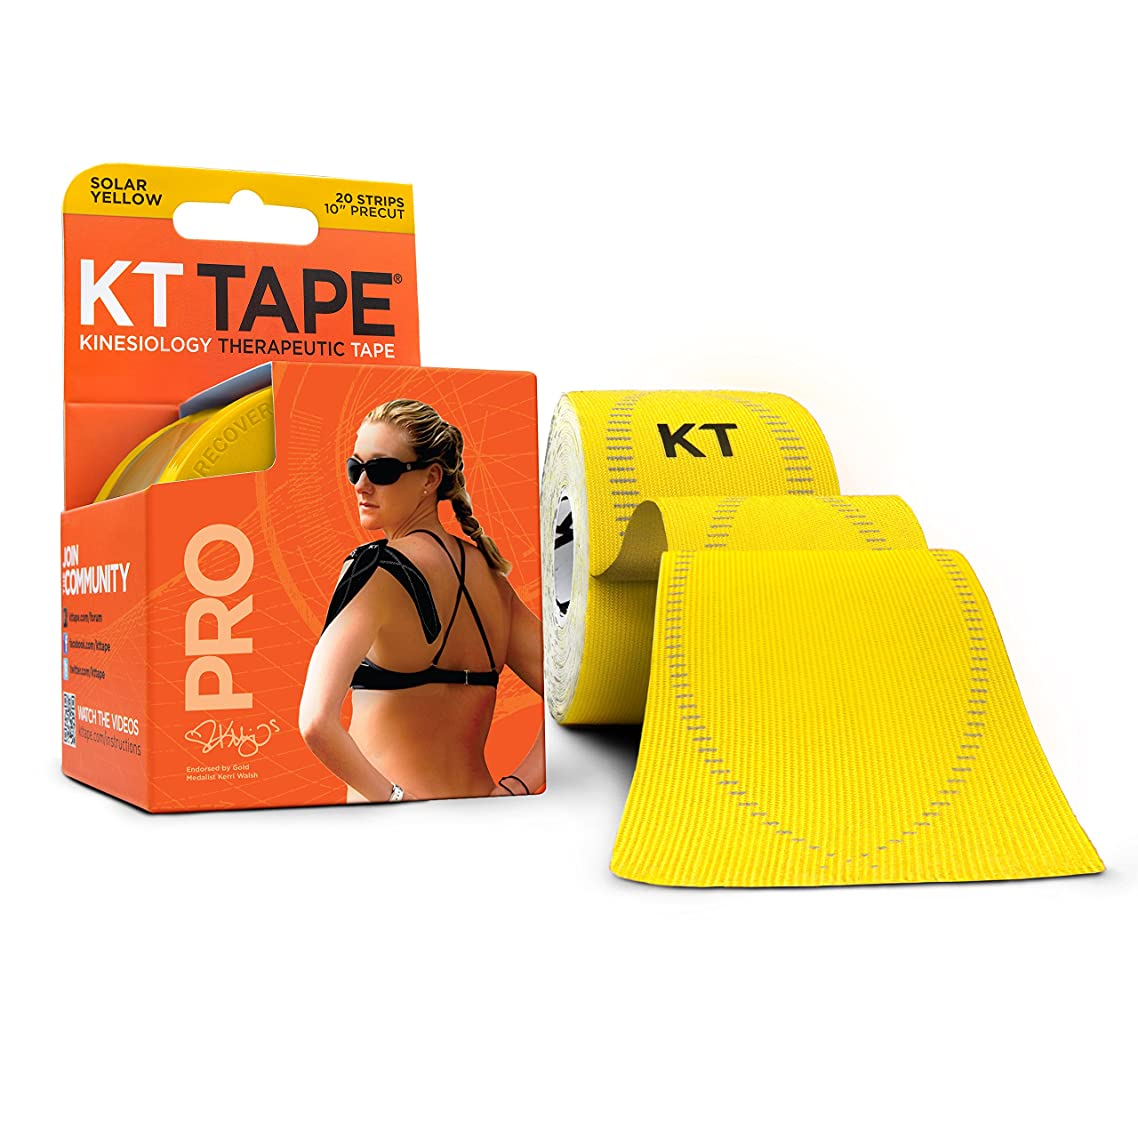 KT Tape Pro Kinesiology Therapeutic Sports Tape, 20 Precut 10 inch Strips, Solar Yellow, Latex Free, Water Resistance, Pro & Olympic Choice